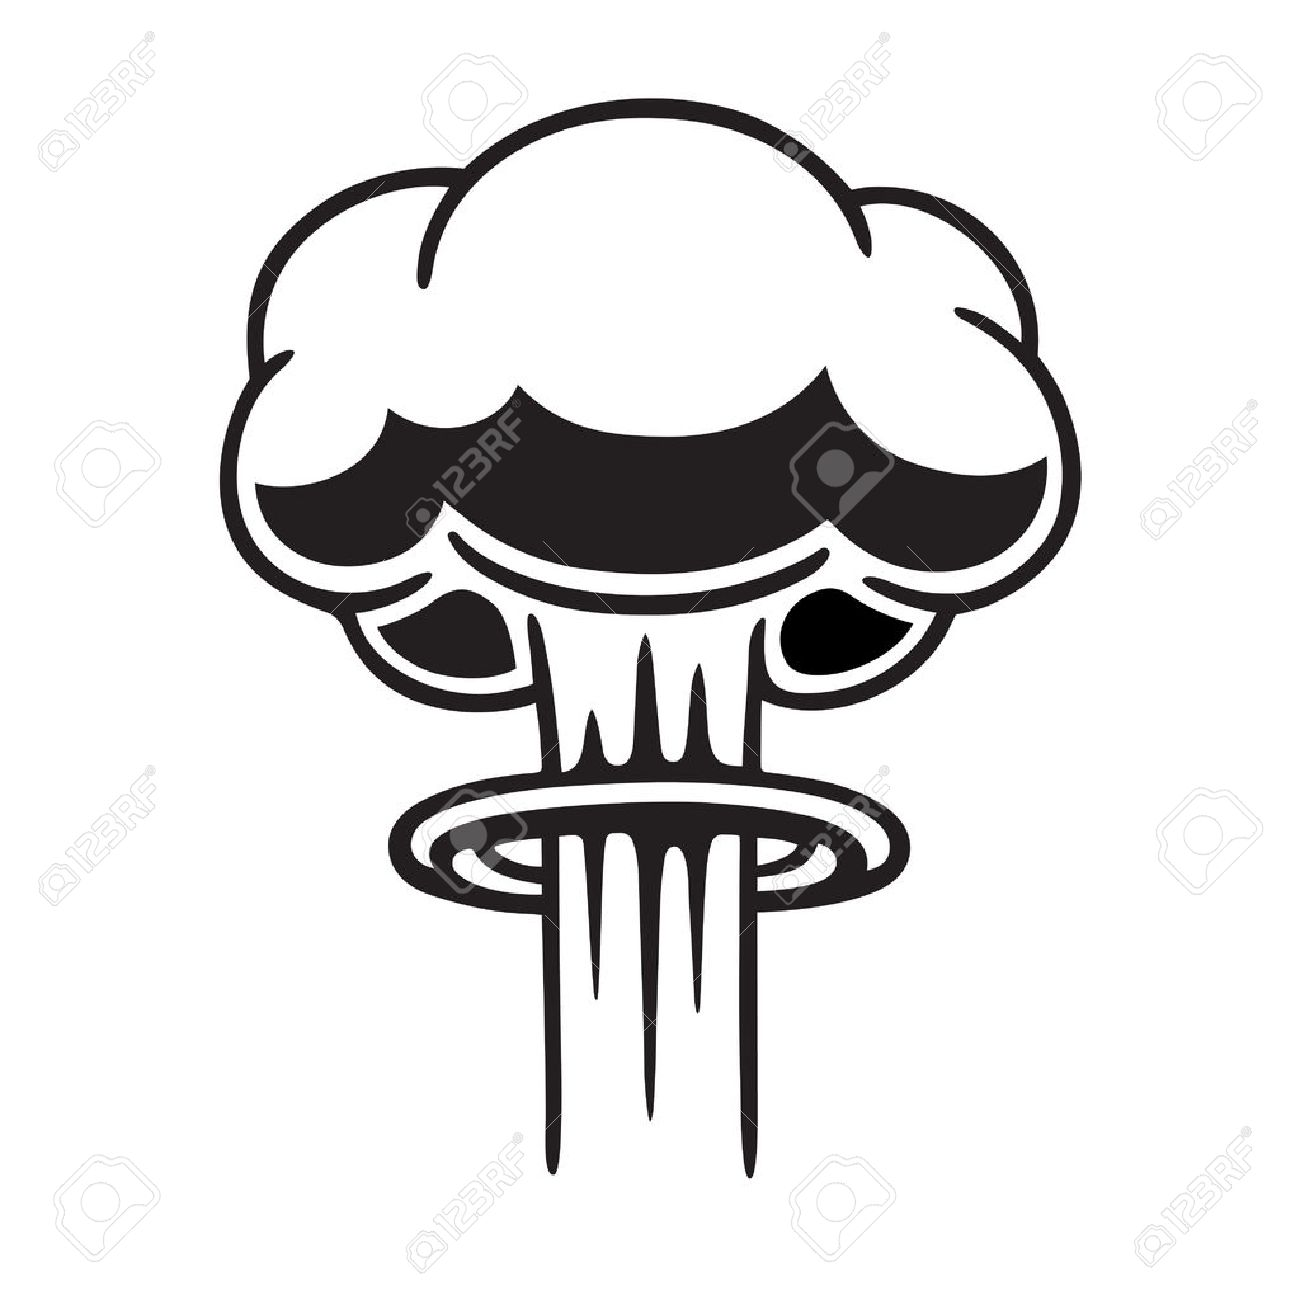 cartoon comic style nuclear mushroom cloud illustration black rh 123rf com  mushroom cloud images clip art